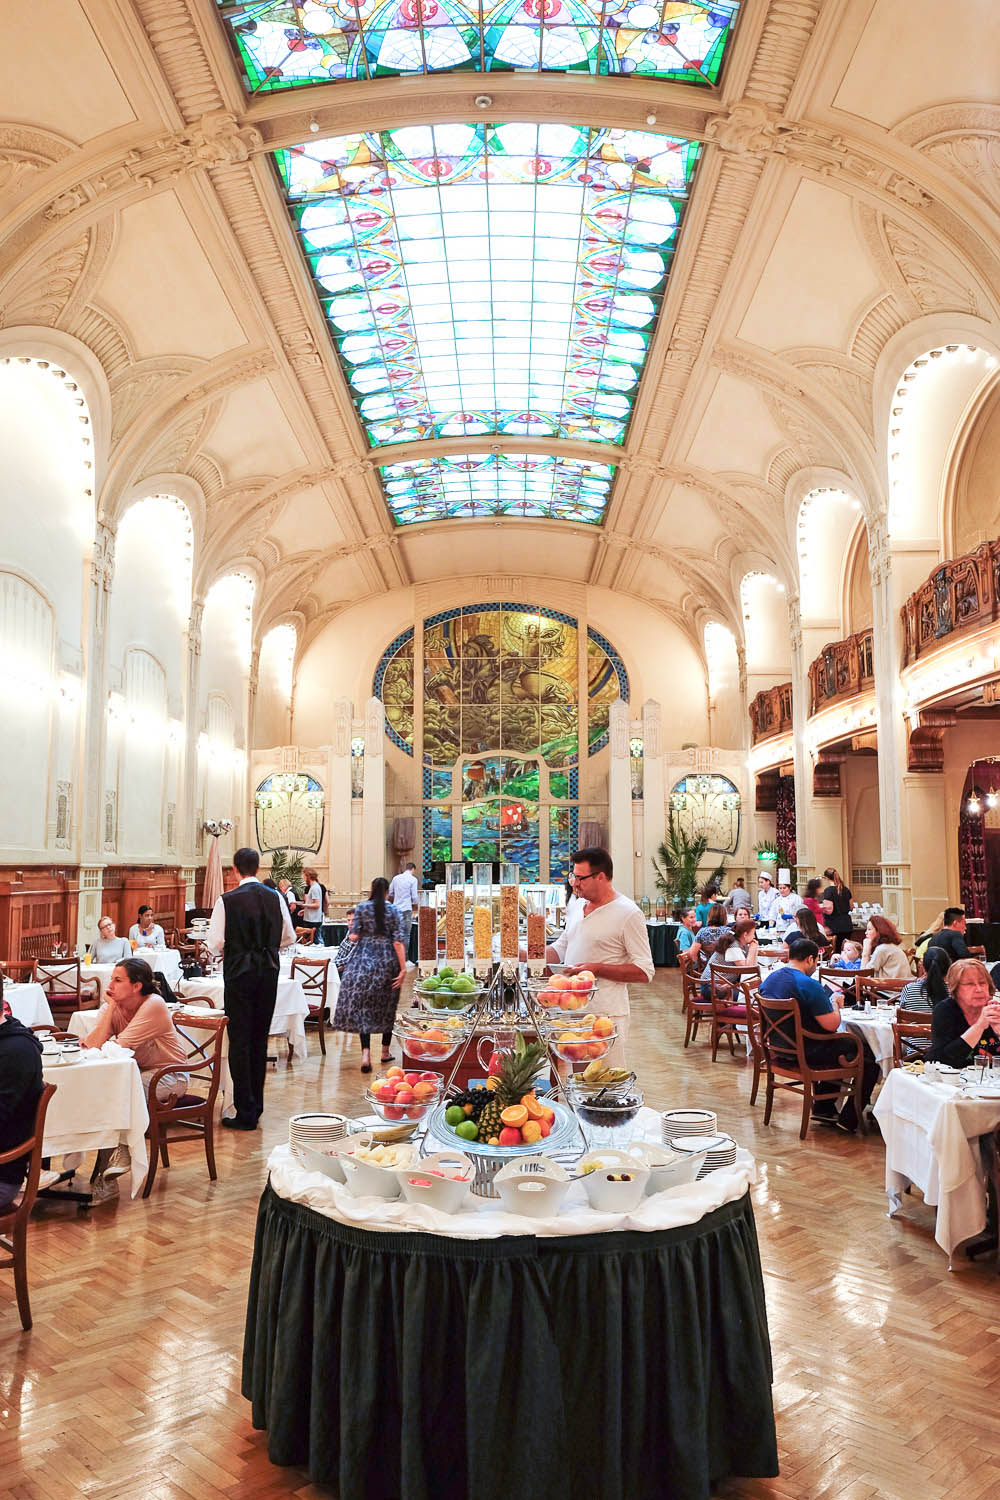 The Art Nouveau-style restaurant L'Europe at Belmond Grand Hotel Europe in Saint Petersburg, Russia